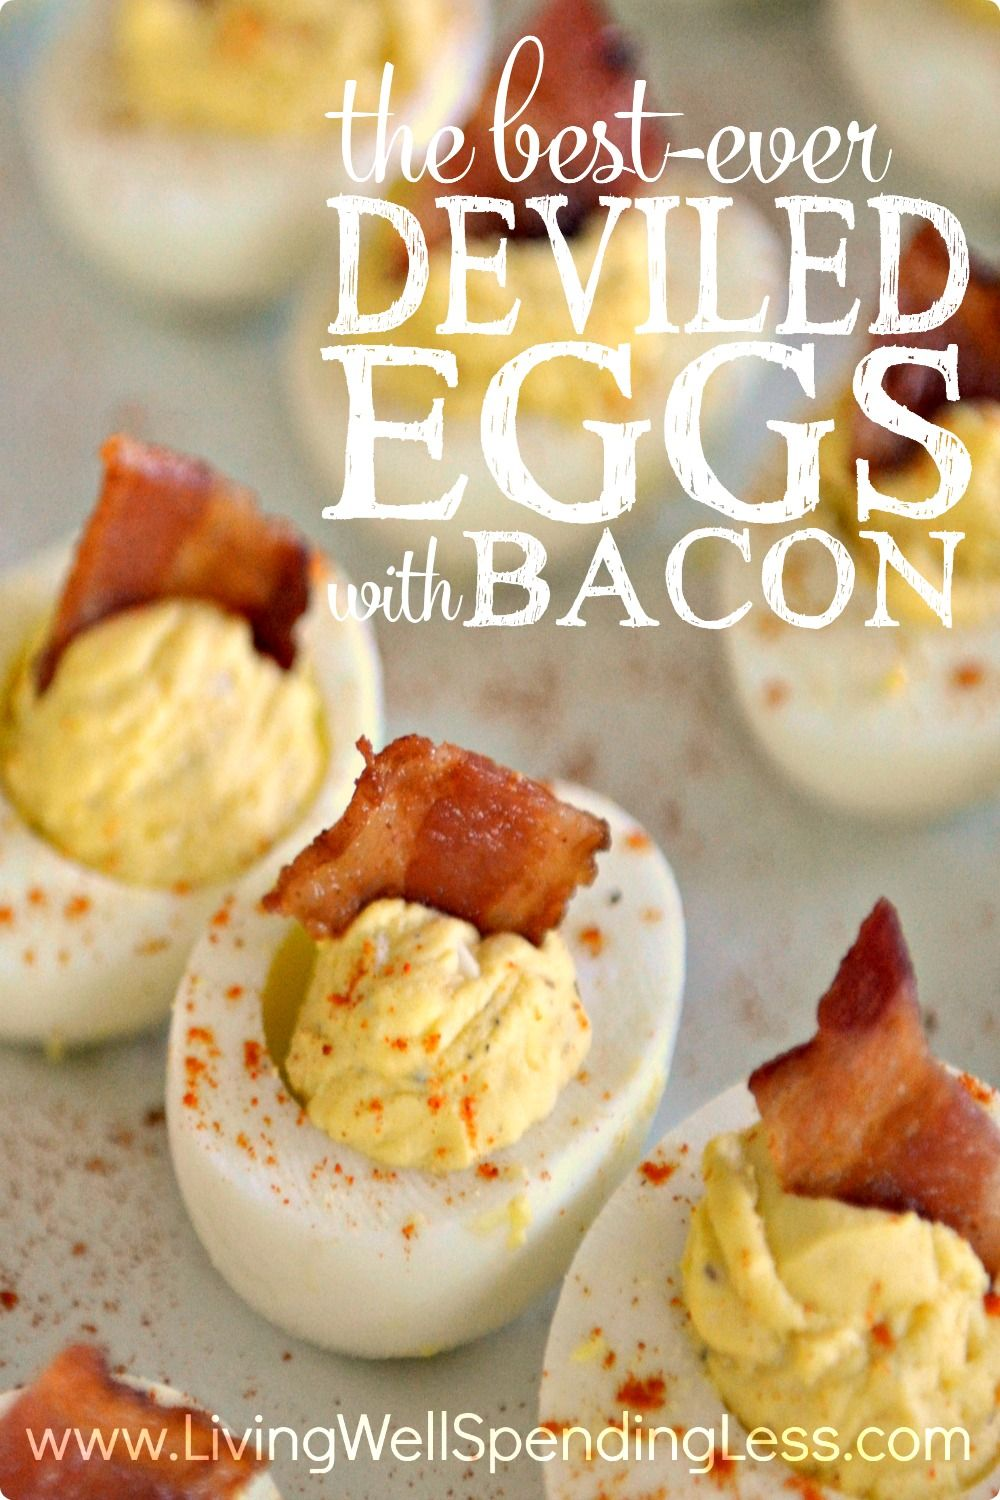 Deviled eggs with bacon bacon egg and devil deviled eggs wbacon i may try this for my work party but my deviled eggs recipe is pretty amazing already forumfinder Choice Image